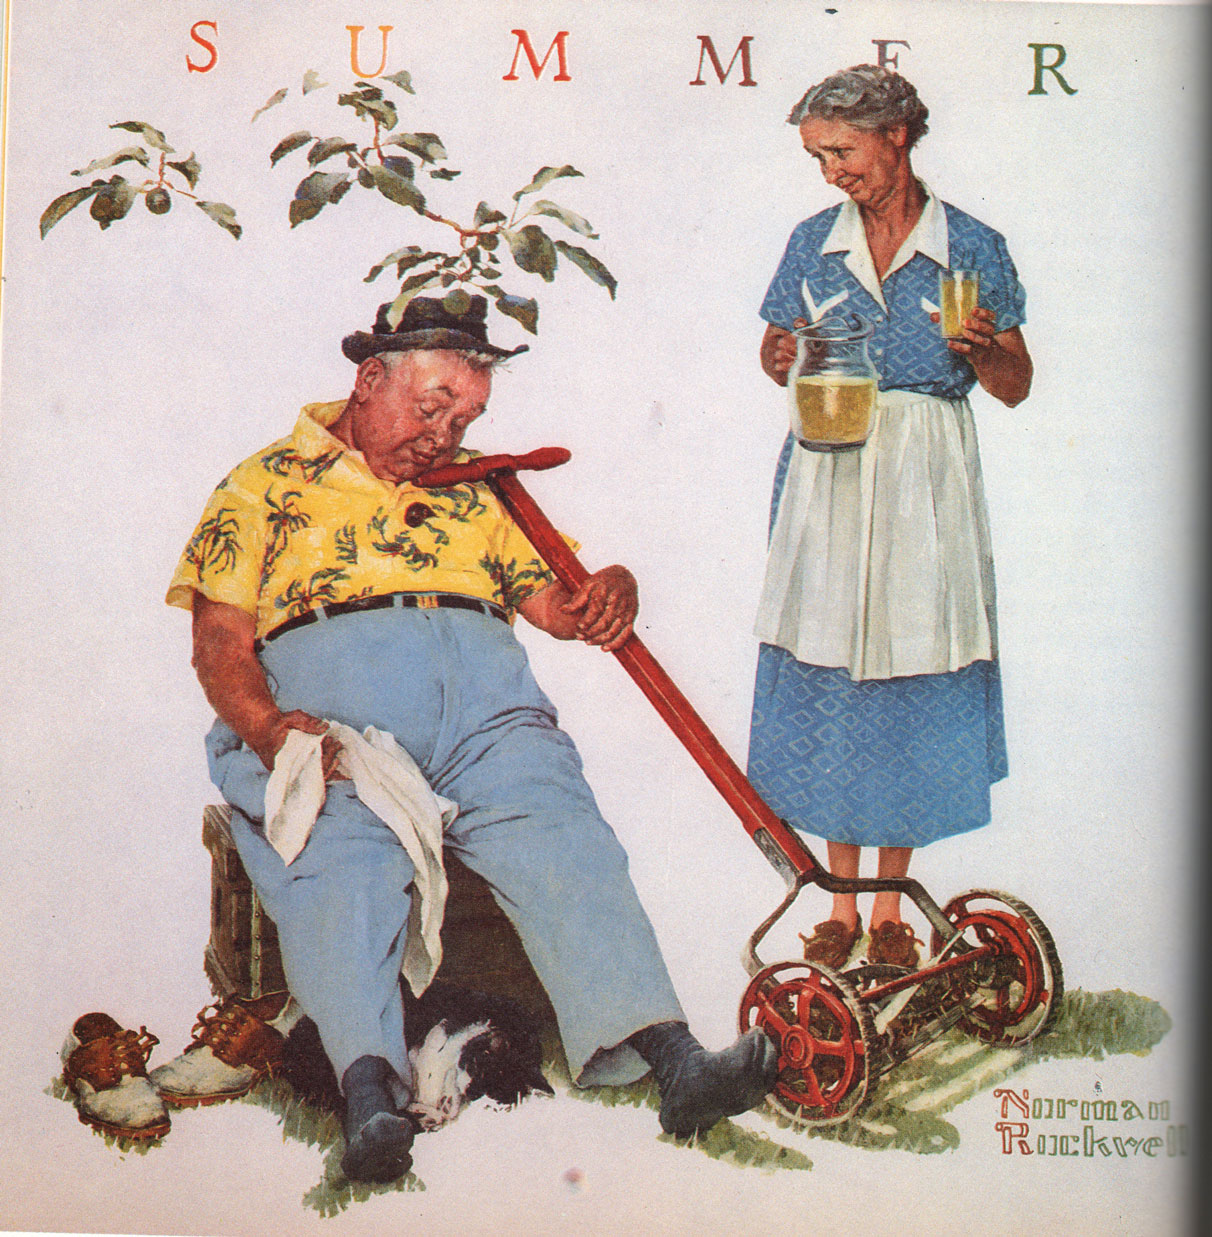 Based on a Four Seasons calendar painting by Norman Rockwell.